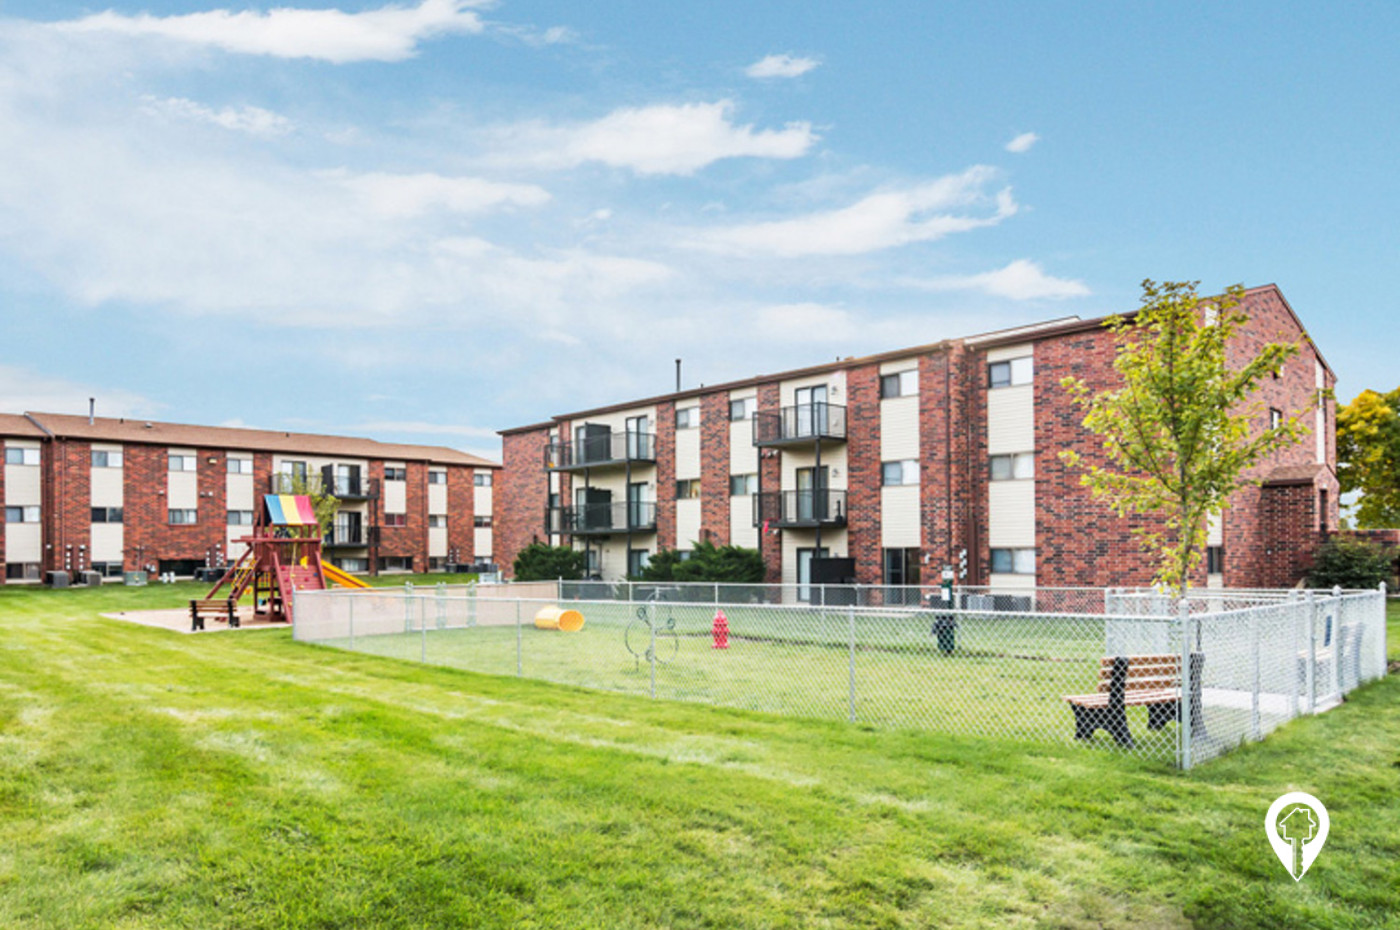 Oakwood-Estates-Apartment-Homes-Have-Some-Fun-at-Community-Playground